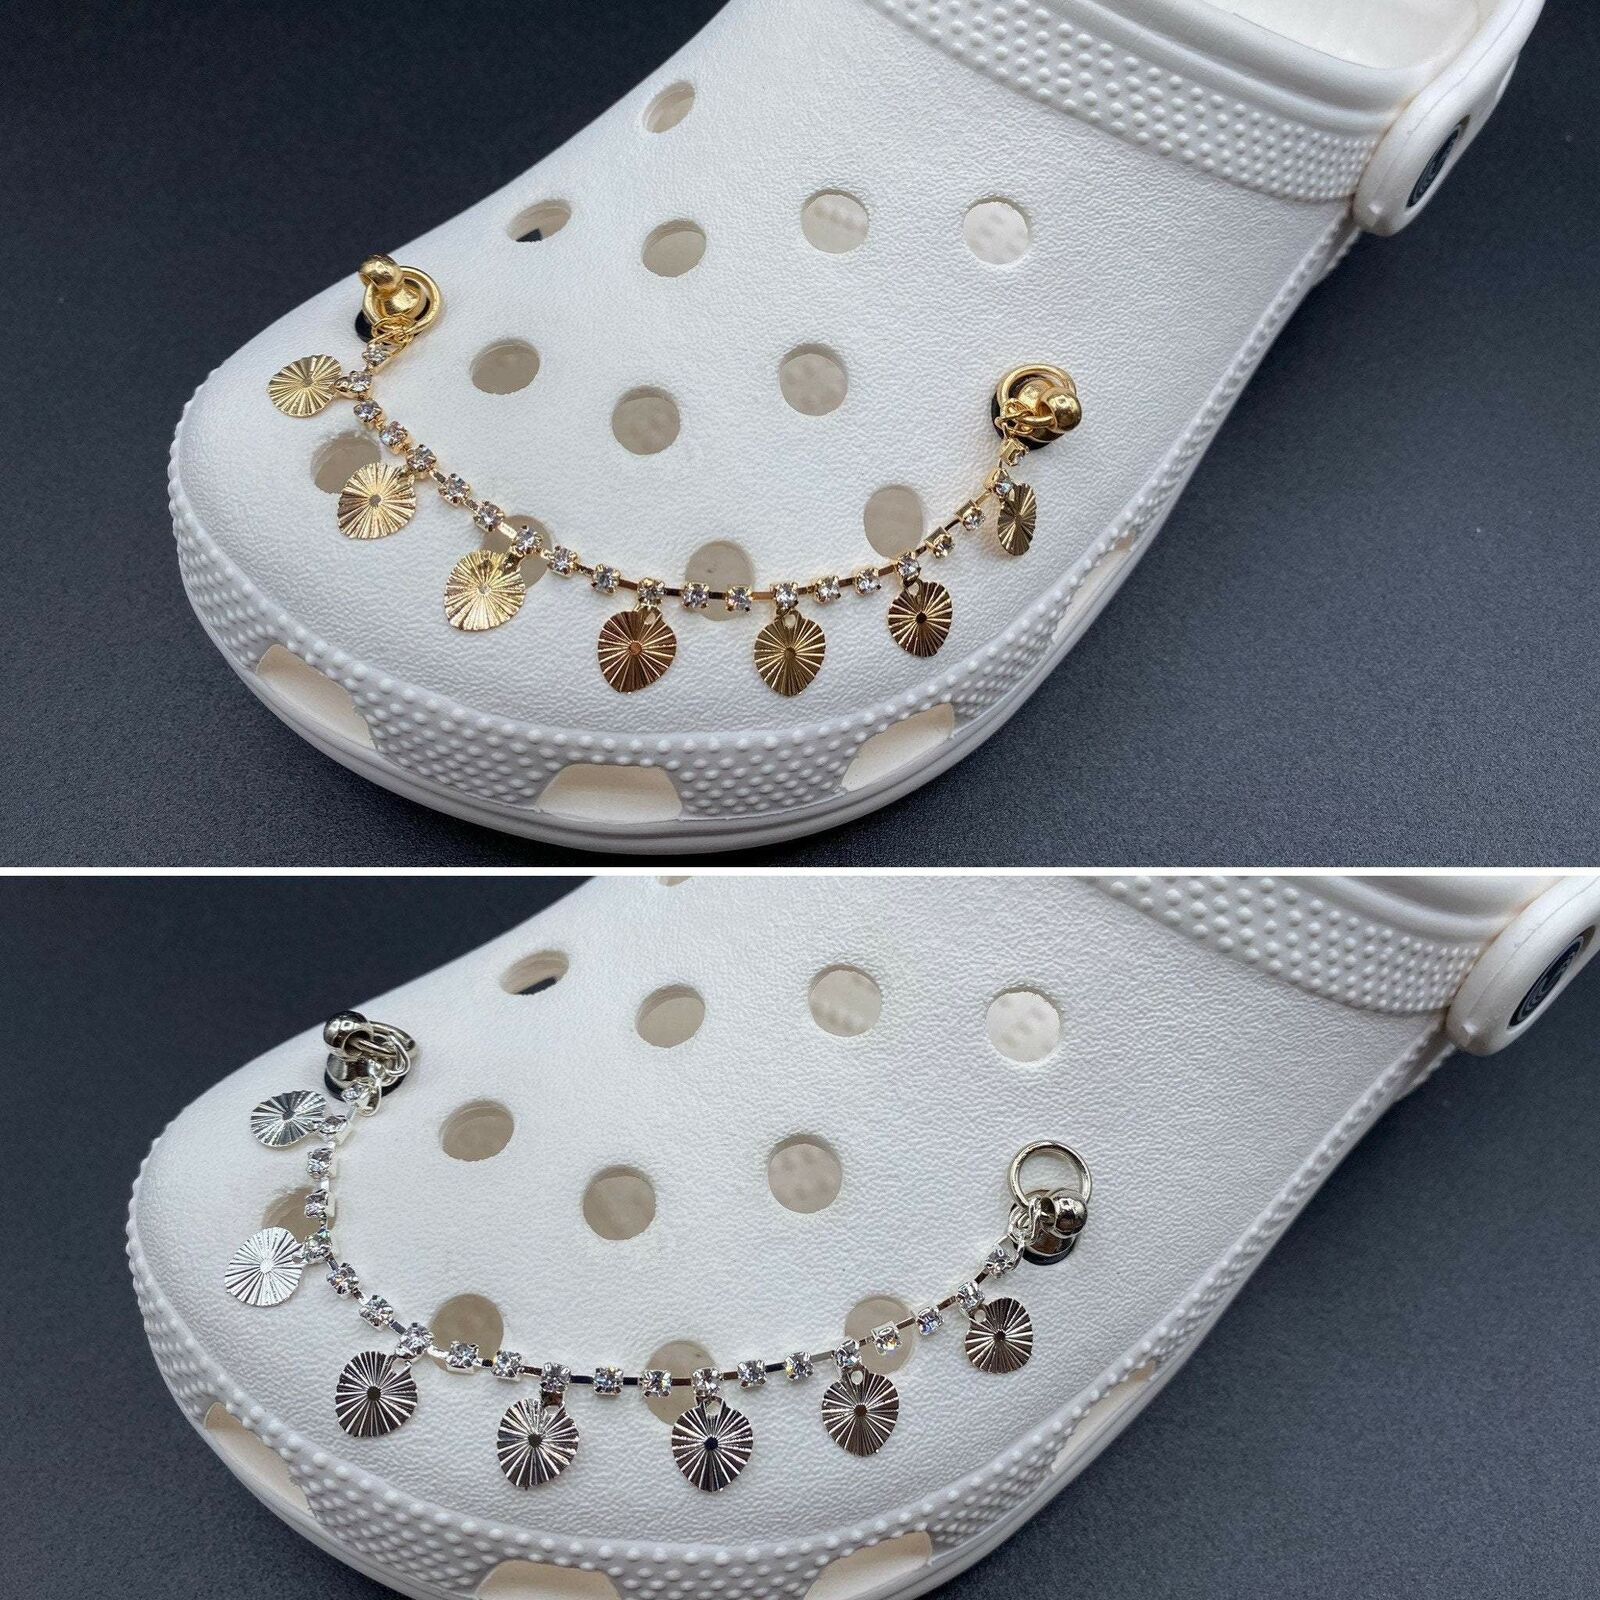 Croc Charms Chain High Quality Luxury Sun Gold and Silver Chain Charms with Rhin